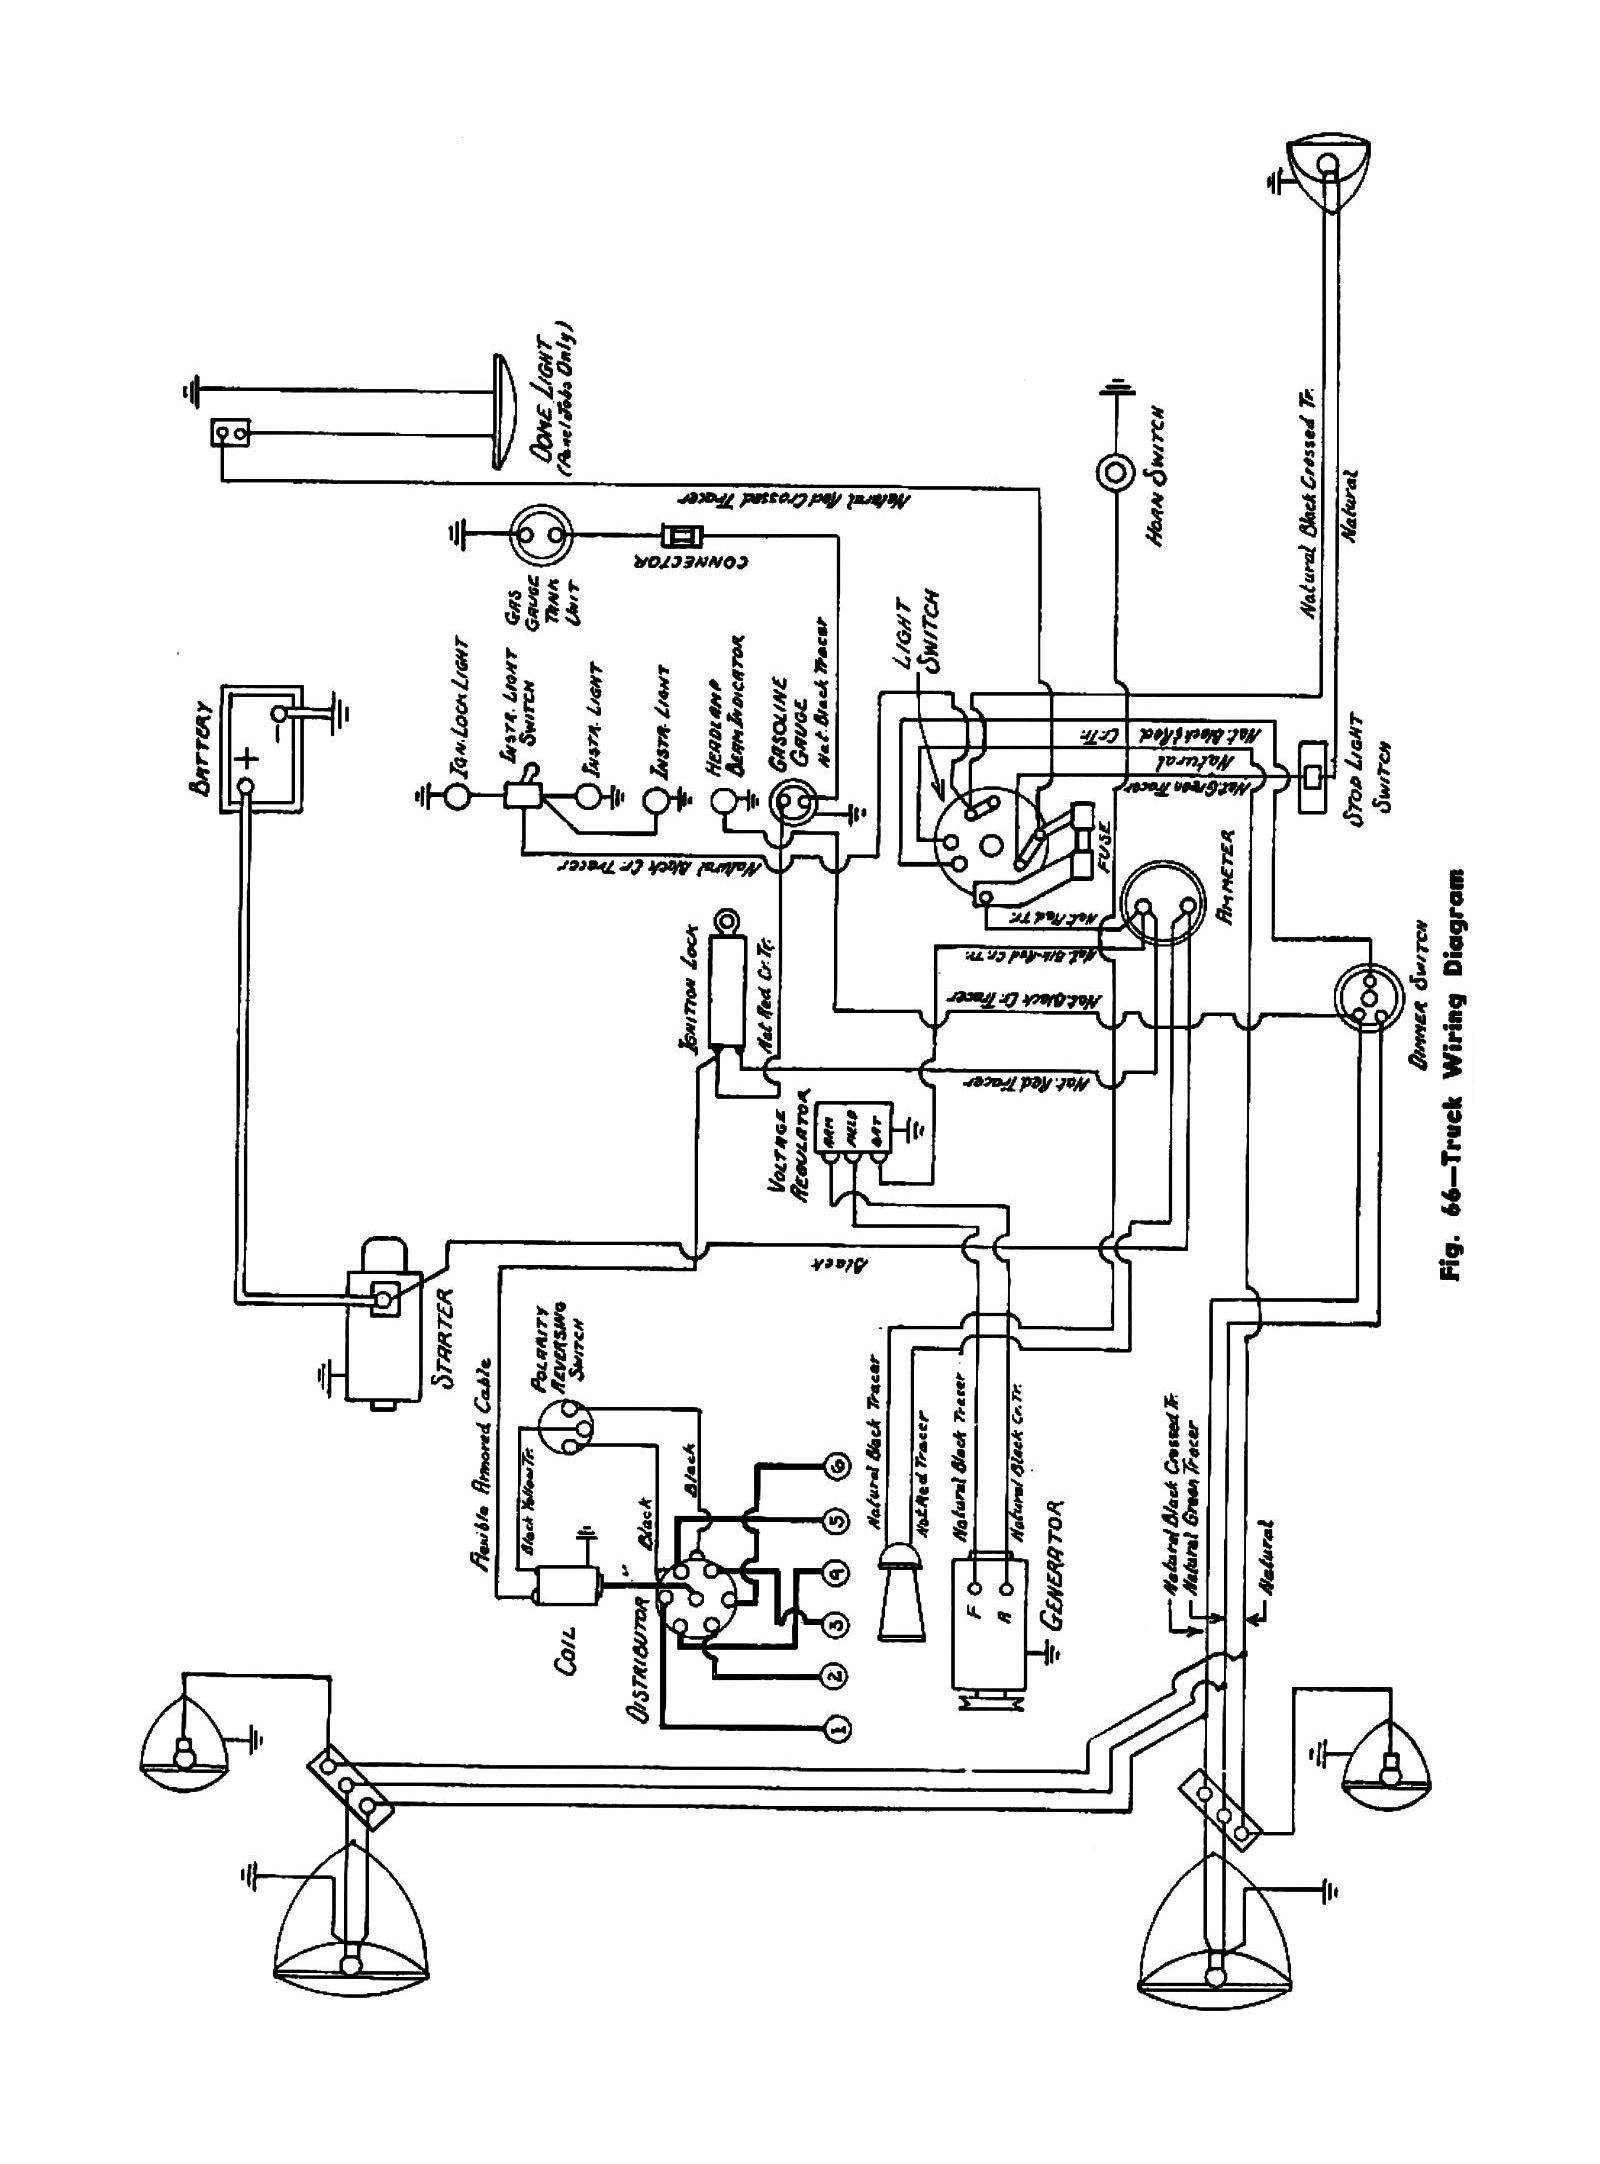 Chevy Wiring Diagrams 1971 Chevy Charging Schematics 1947 Chevy Wiring  Diagram